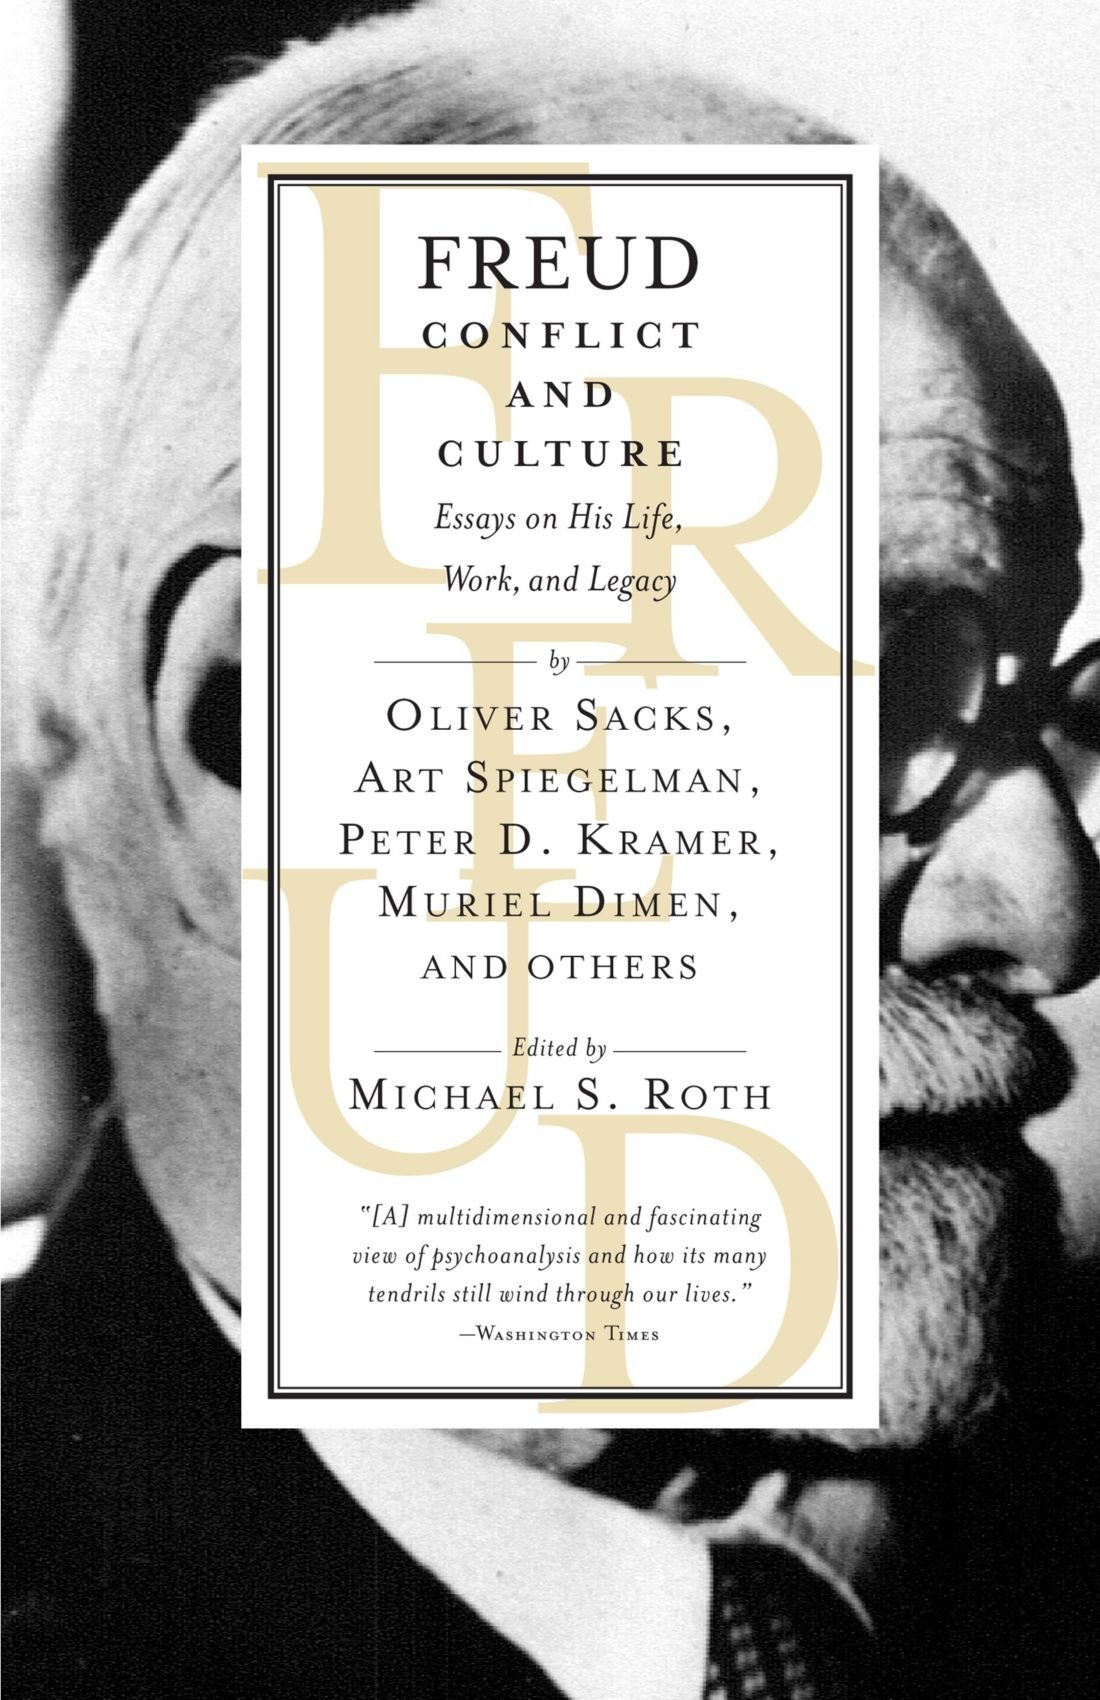 freud conflict and culture essays on his life work and legacy freud conflict and culture essays on his life work and legacy michael s roth 9780679772927 amazon com books